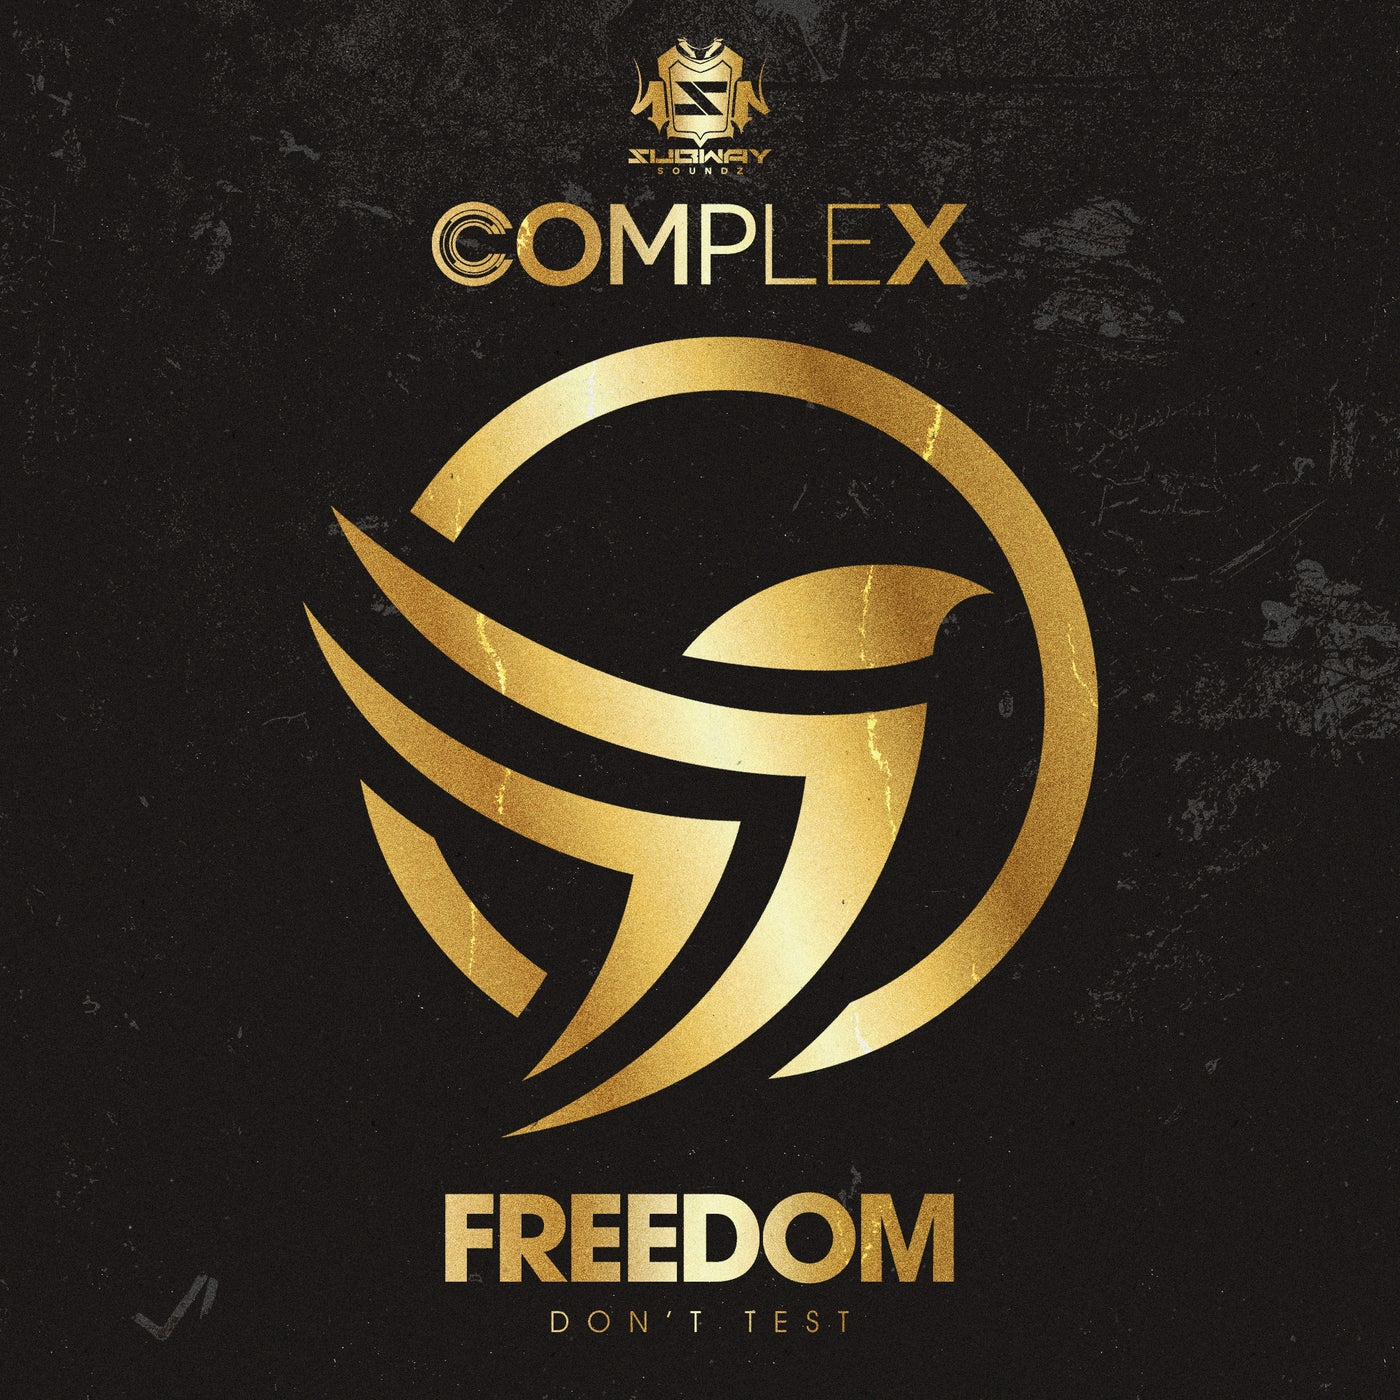 Complex - Freedom / Don't Test (2021)